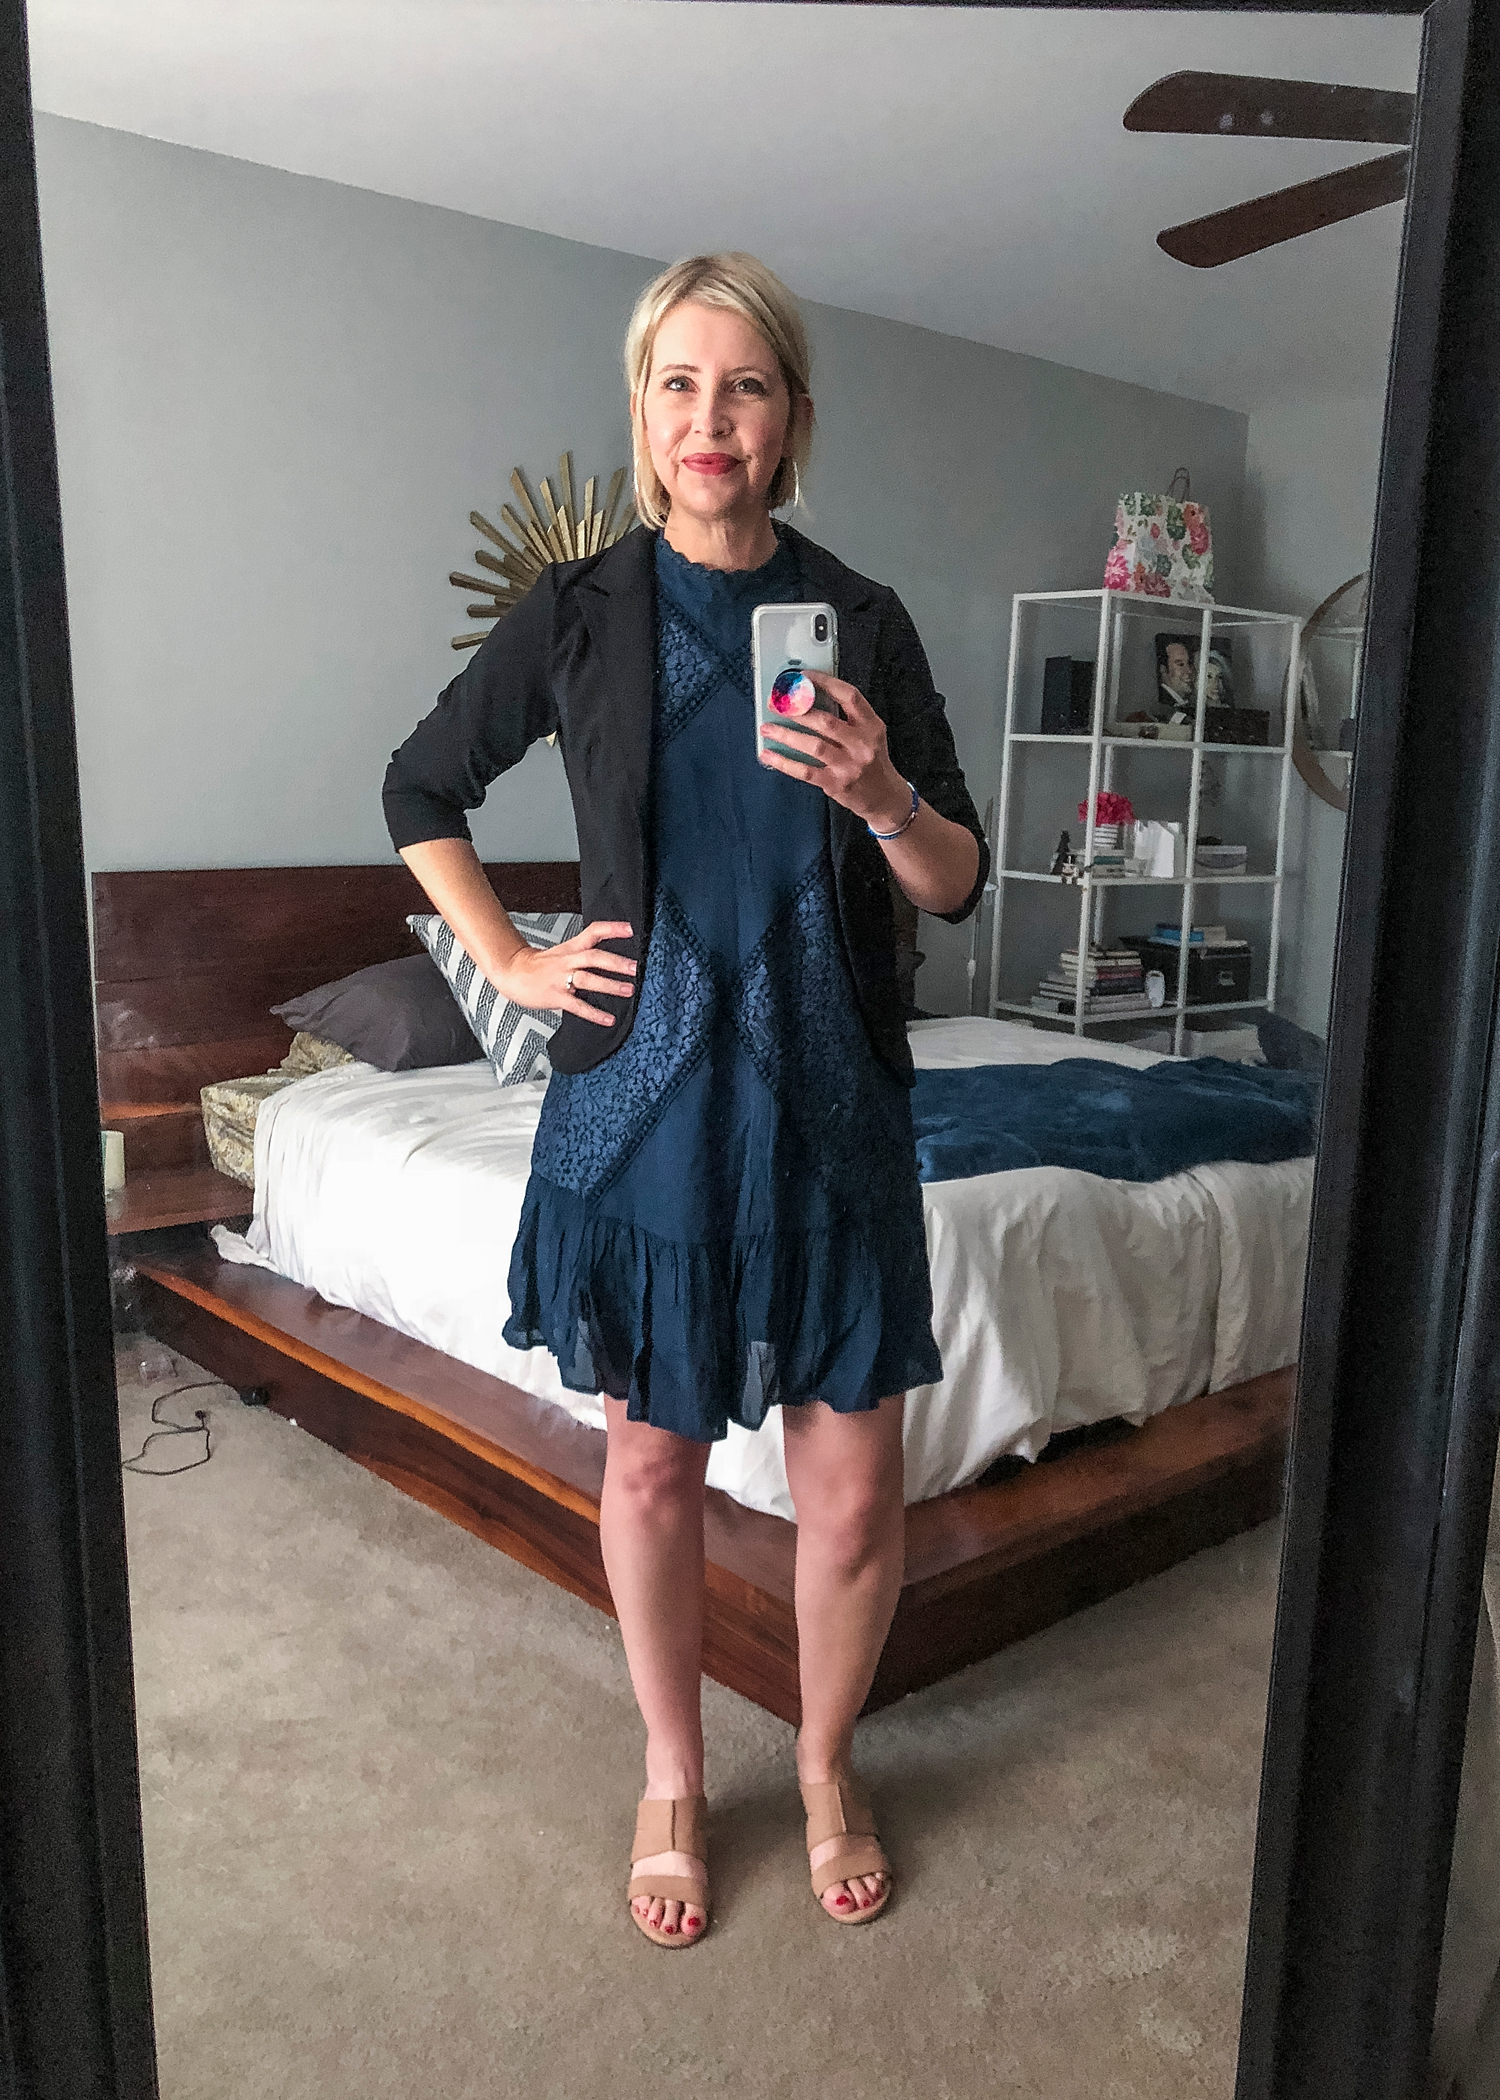 This is a black and navy lace sleeveless dress from Ella Moon in my Amazon Prime Wardrobe box.